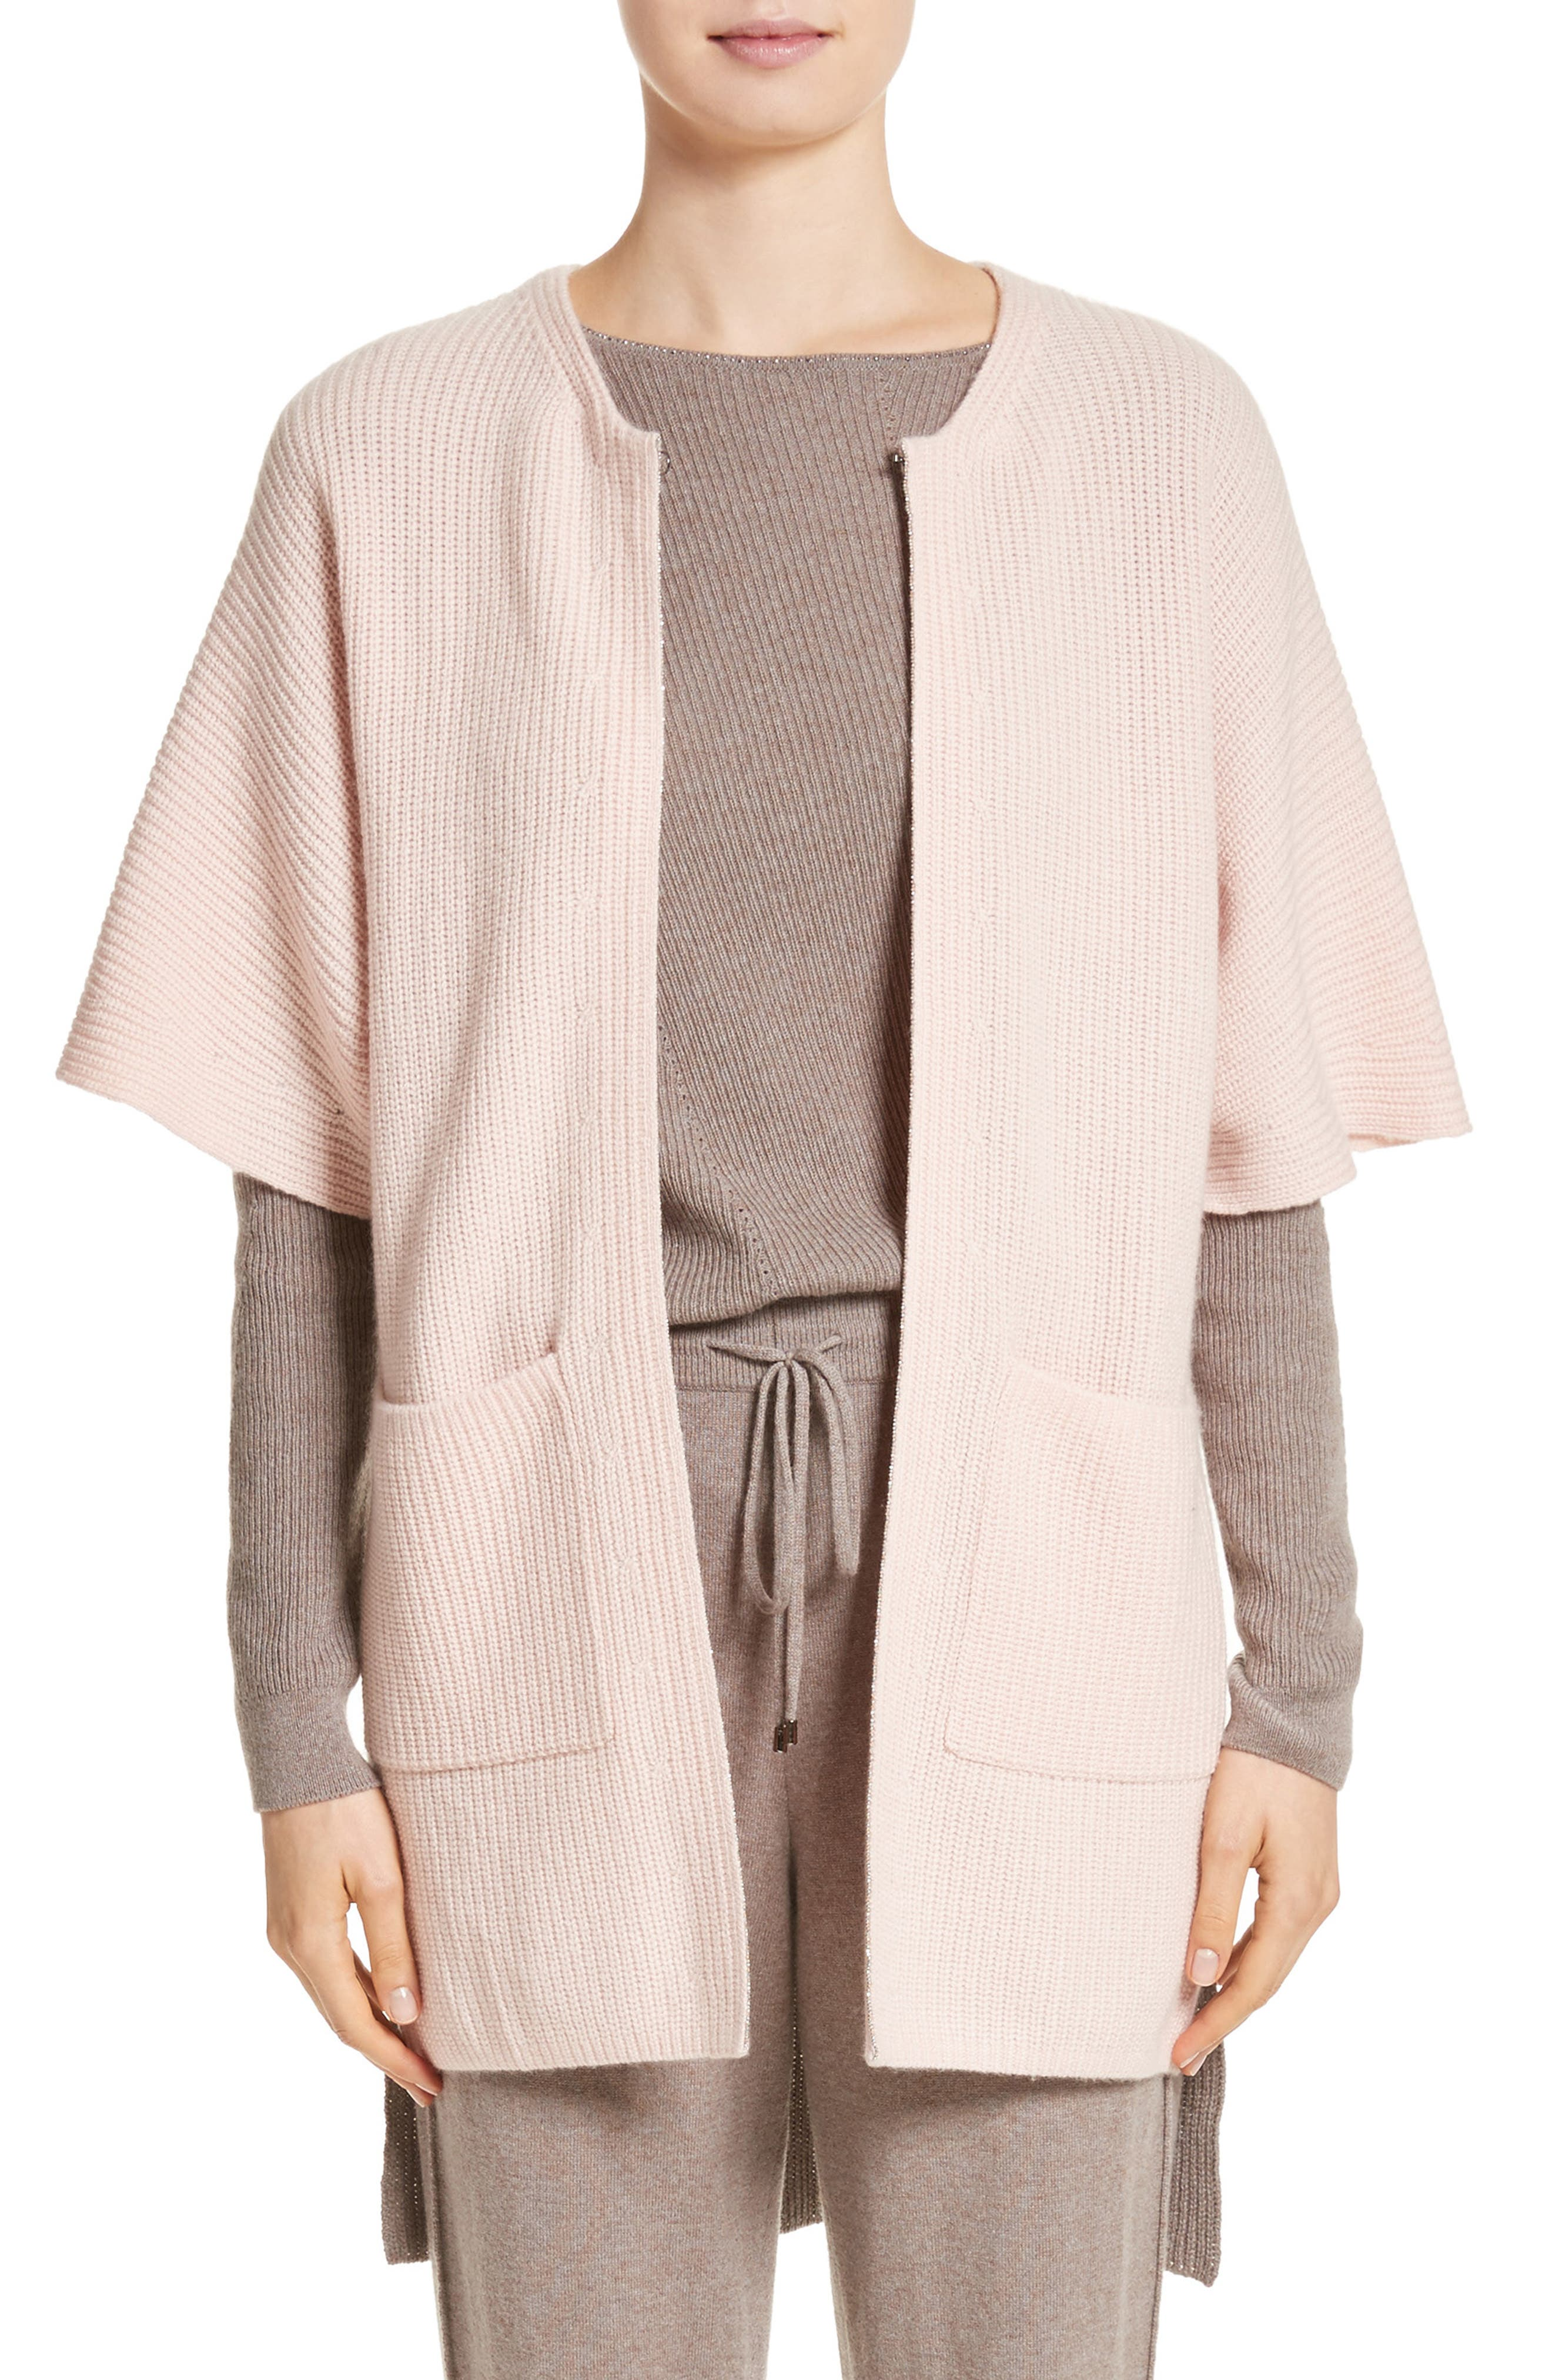 Alternate Image 1 Selected - St. John Collection Patch Pocket Cashmere Cardigan